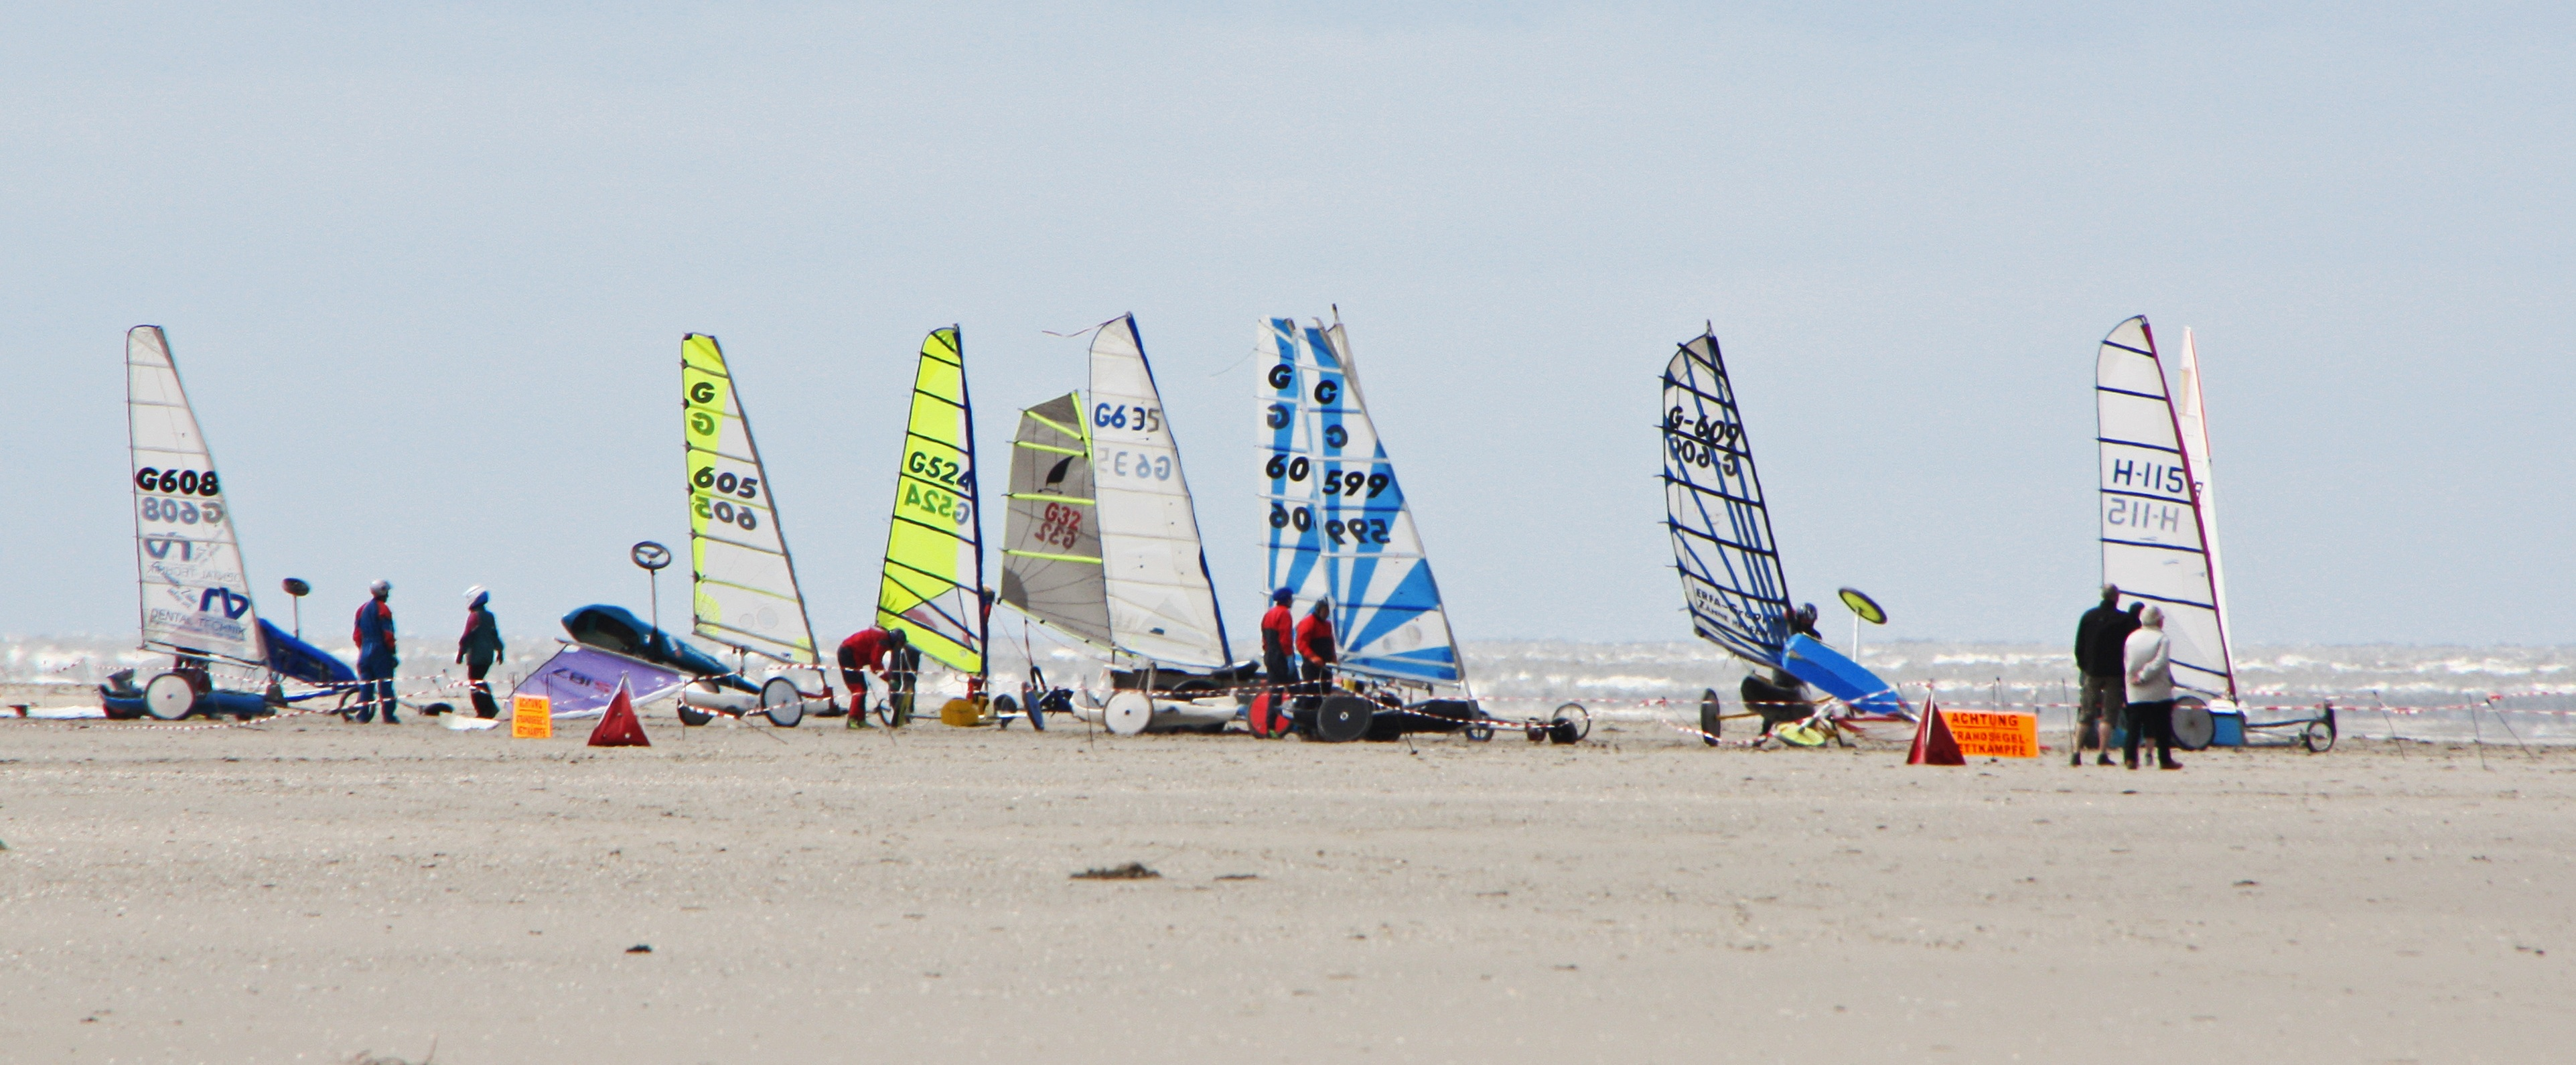 Strandsegeln in Sankt Peter Ording mit Brodos Adventure Club